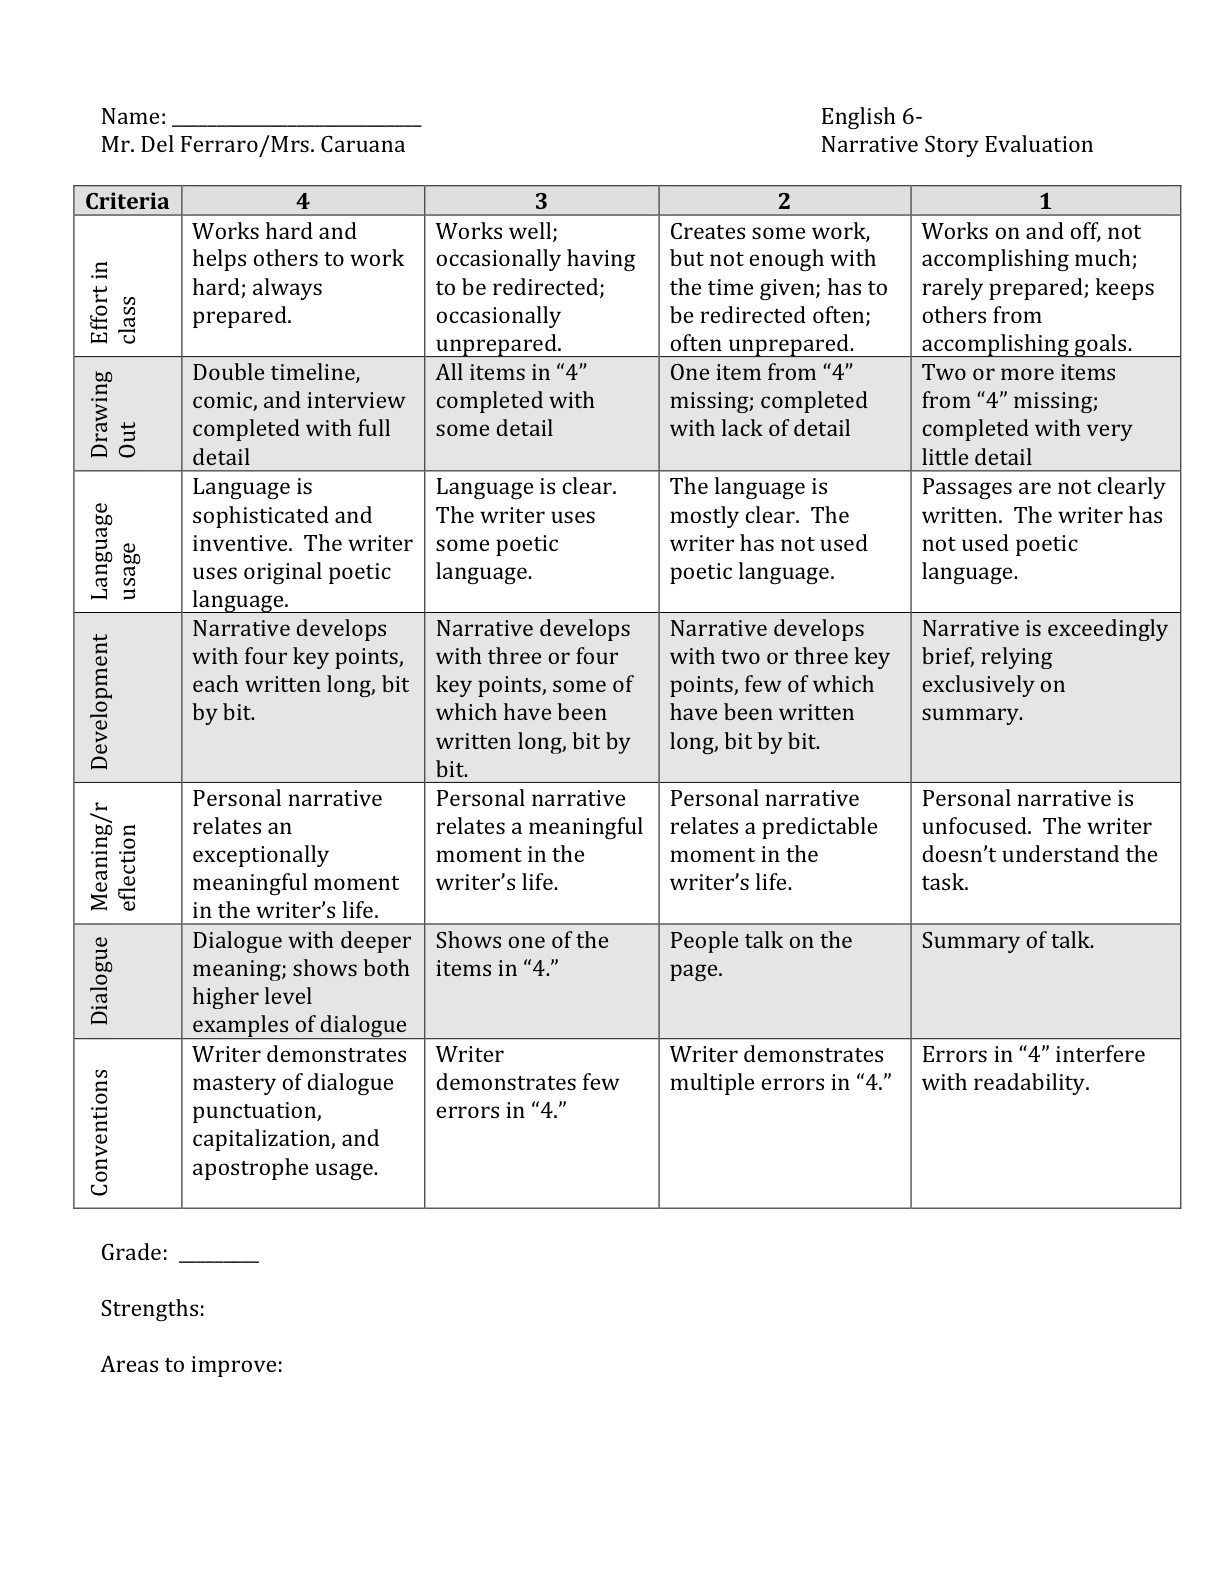 Personal Narrative Writing Rubric Middle School